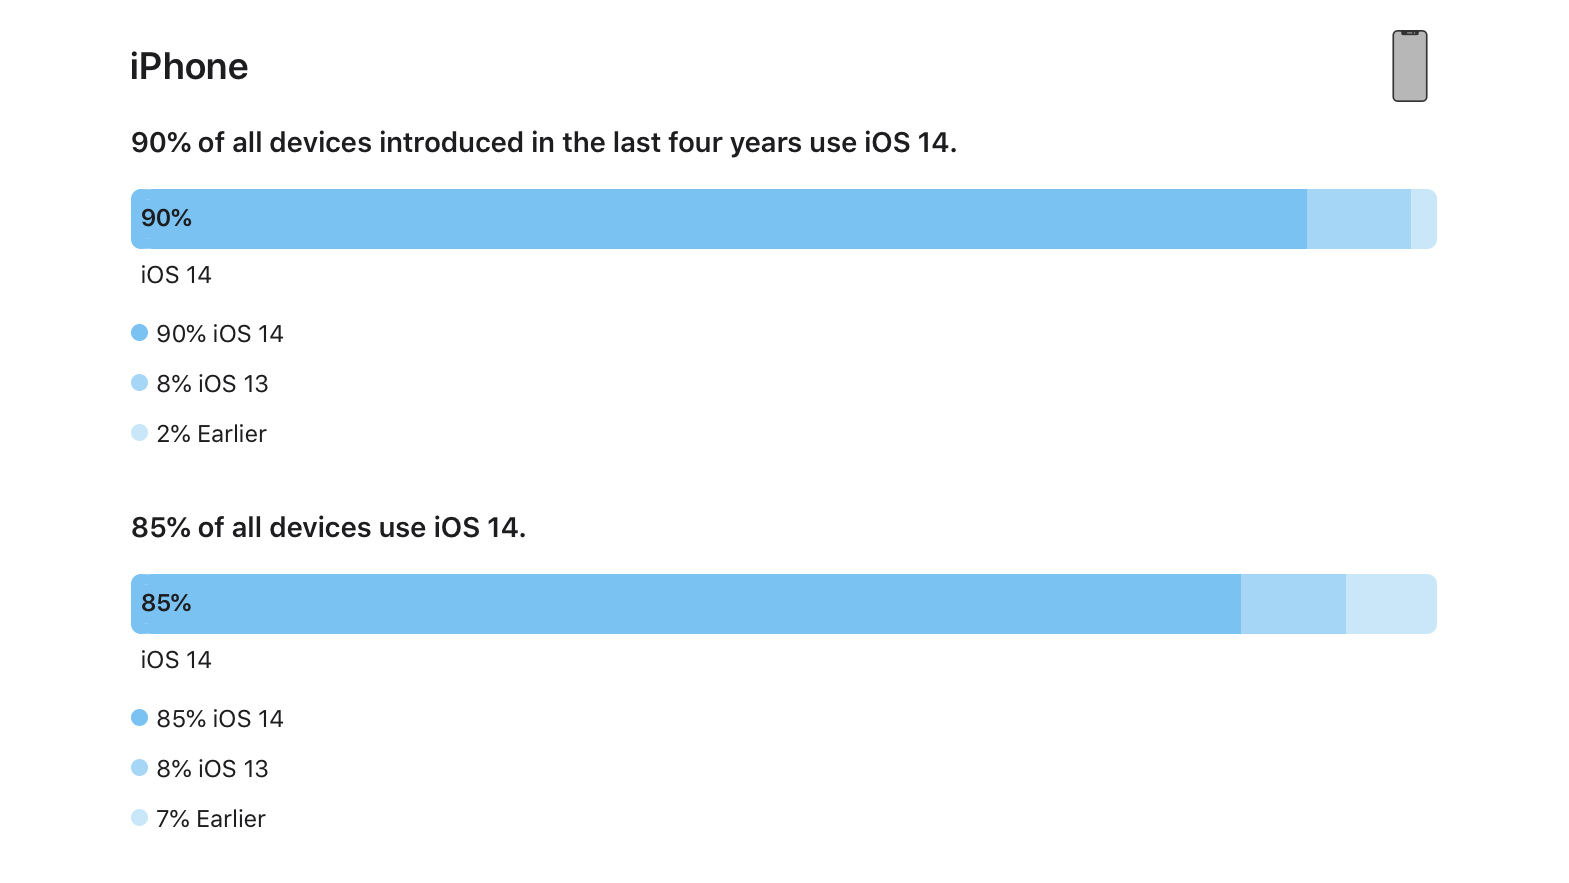 iOS 14 Now Installed on 90% of iPhones Released in Last Four Years